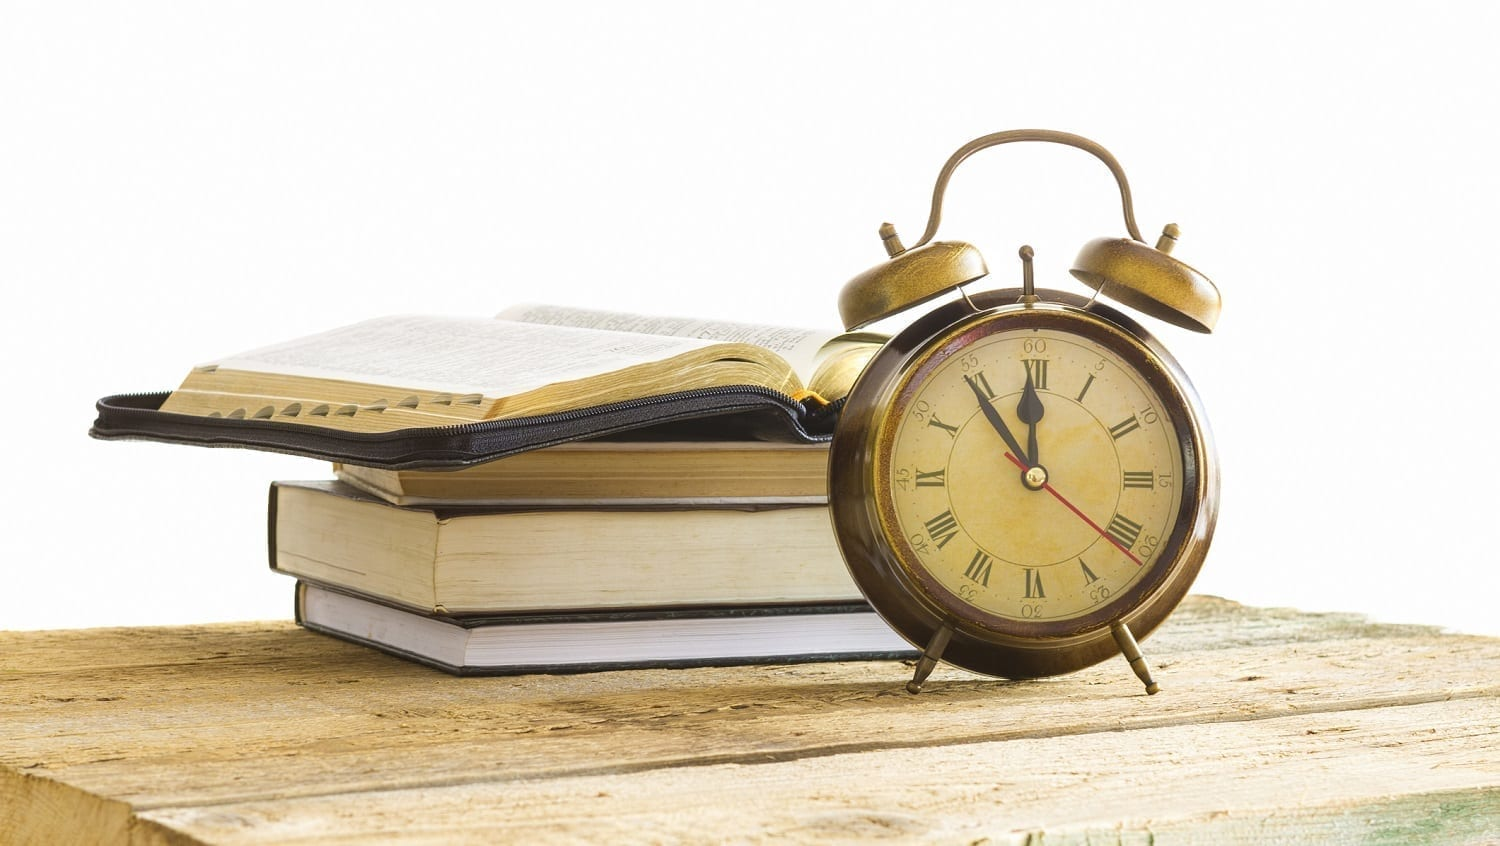 Bible on pile of books with alarm clock: ID 41050886 © Manaemedia | Dreamstime.com